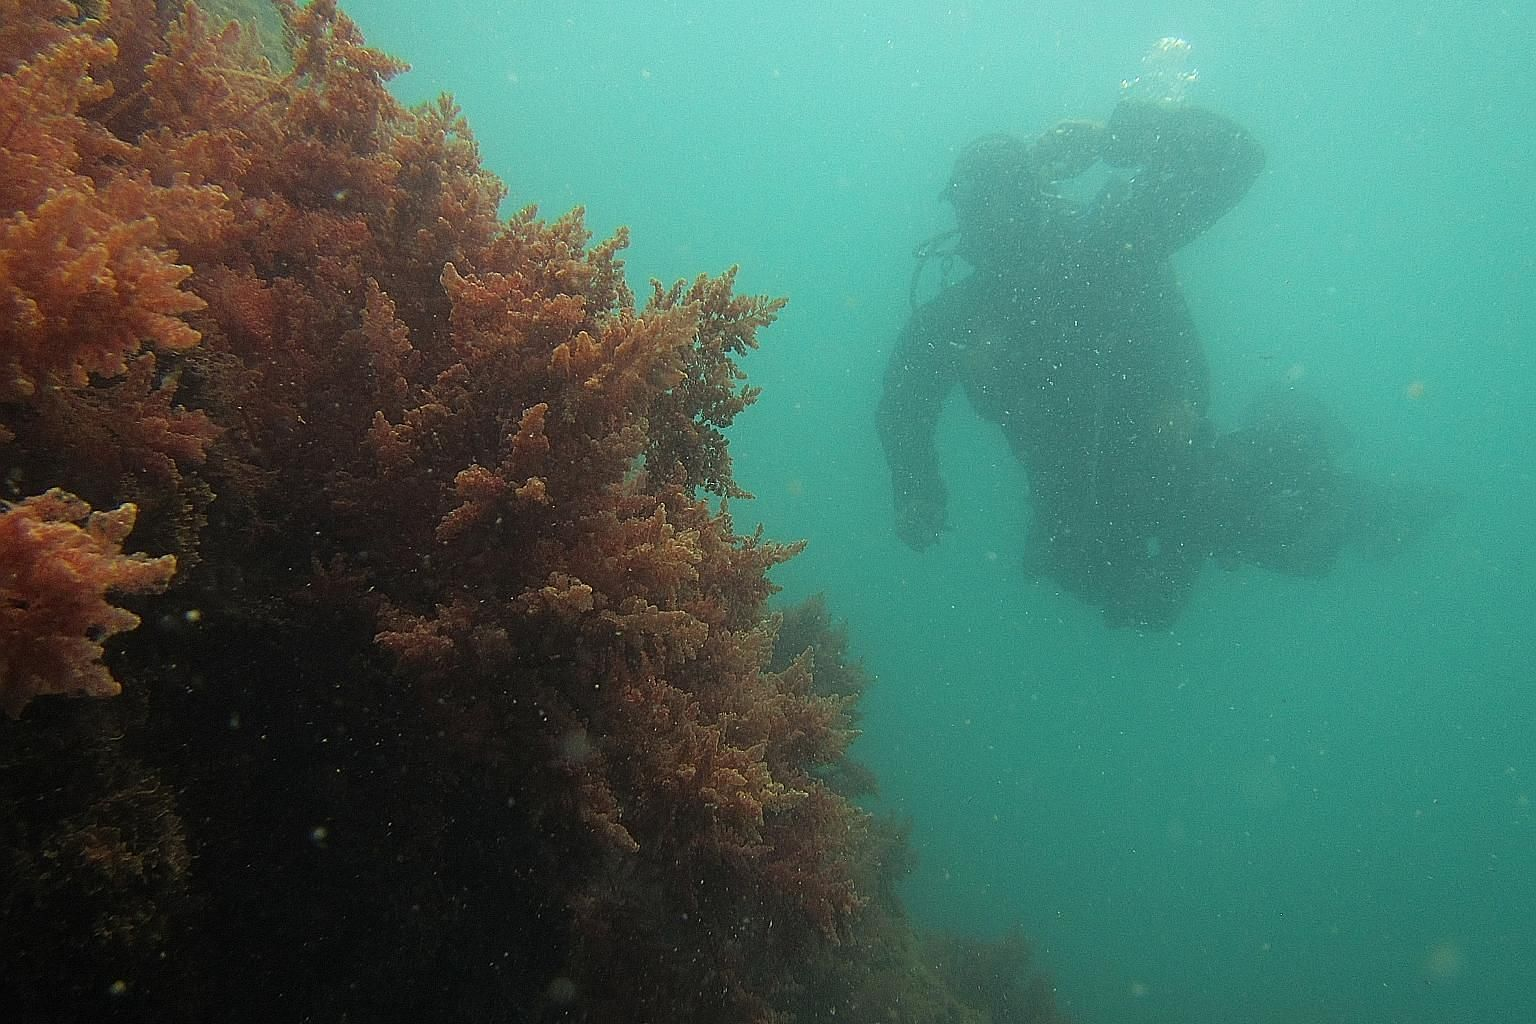 Researchers say farming seaweed to feed livestock has another significant benefit. Their method of underwater farming can help to cool water temperatures - a threat to marine life and the Great Barrier Reef.